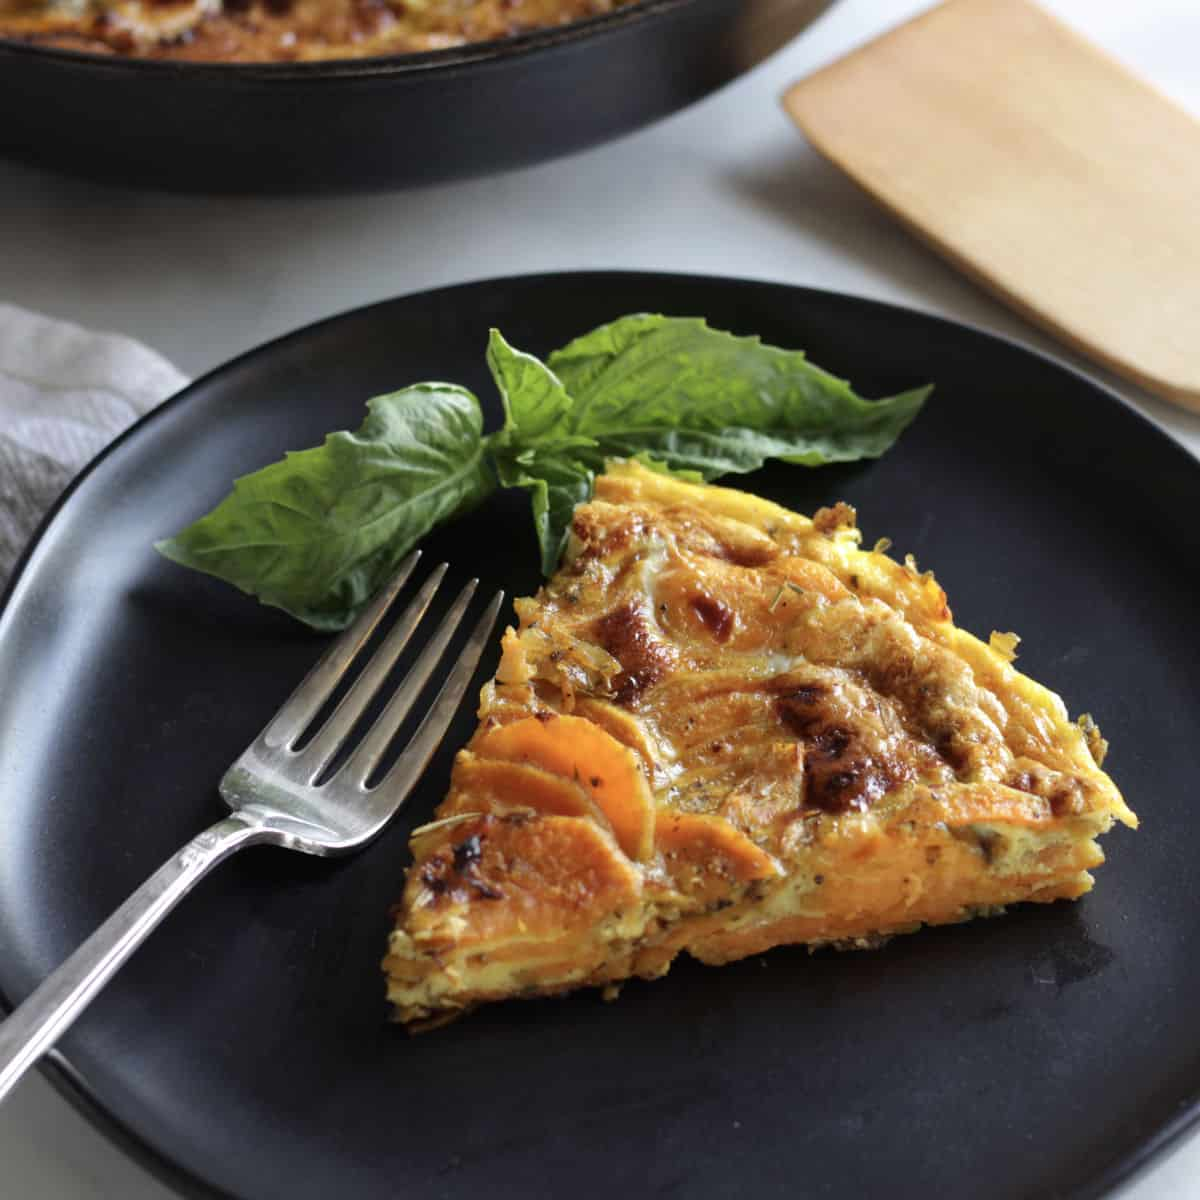 wedge of golden sweet potato frittata with fork and basil garnish on black plate